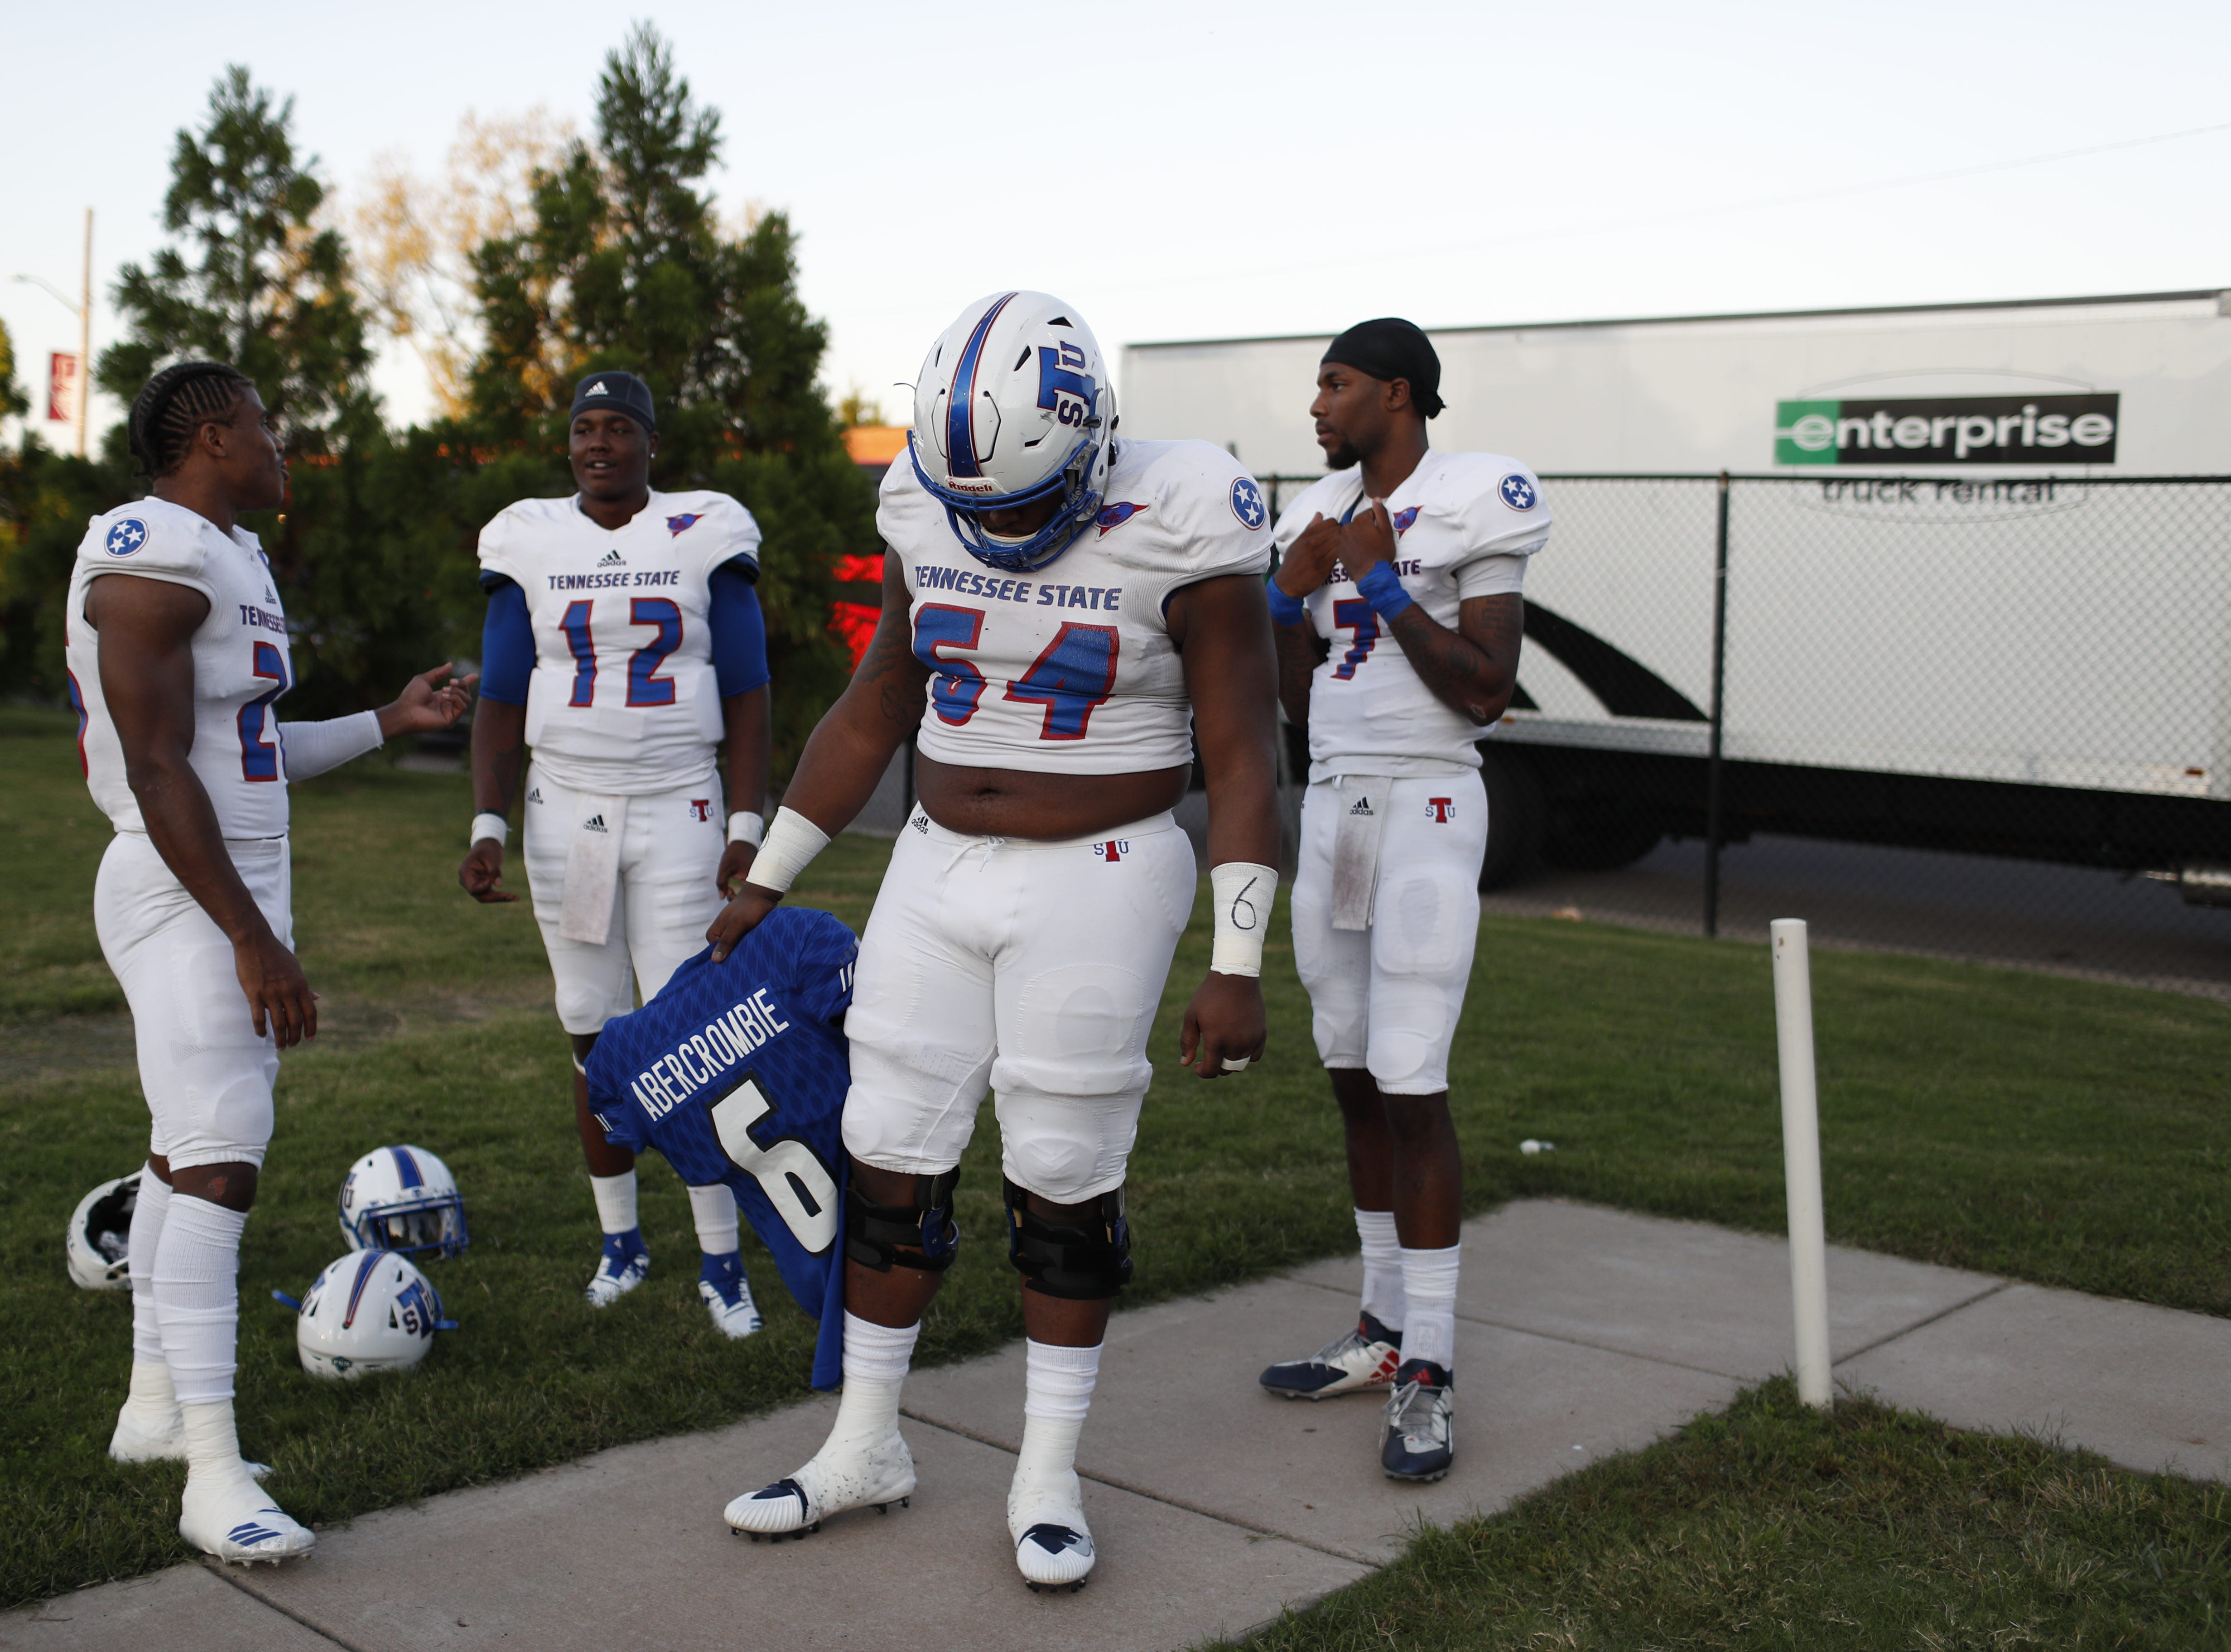 Tennessee State offensive lineman Thomas Burton holds the shoulder pads and jersey of linebacker Christion Abercrombie before the Tigers' game at Austin Peay on Saturday, October 6, 2018.